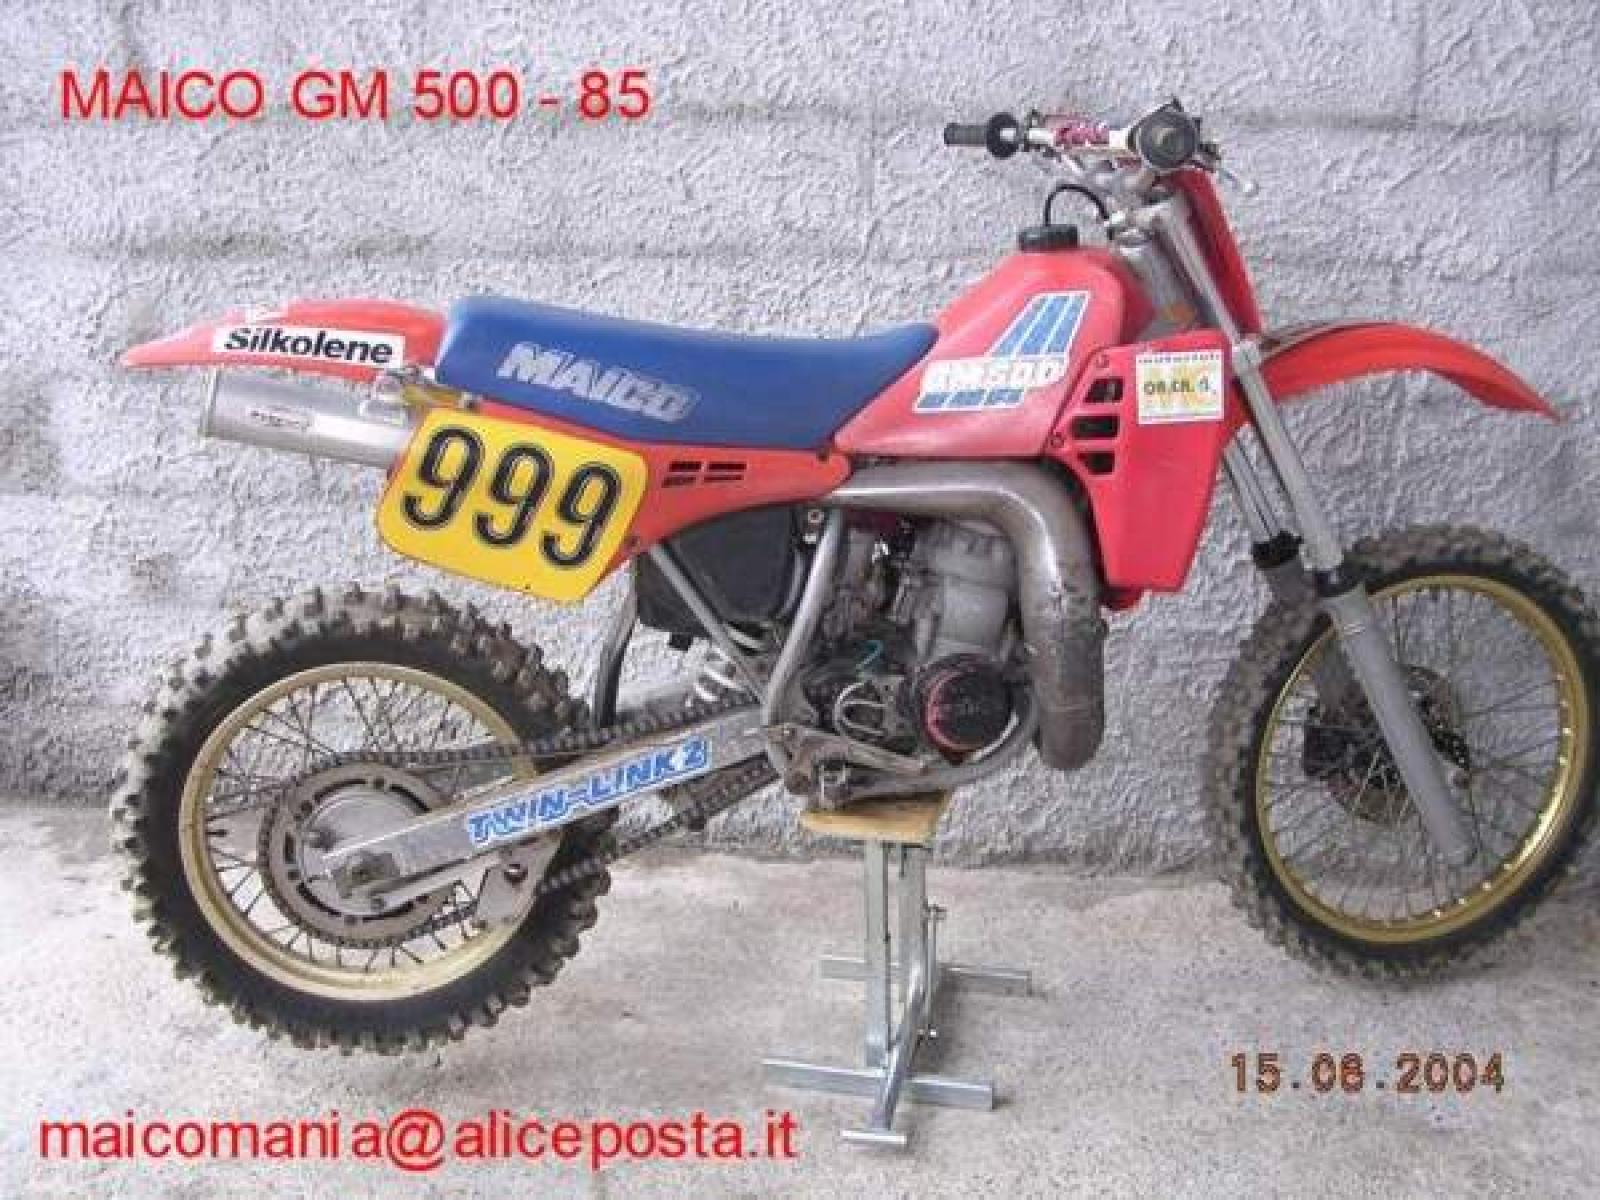 Maico GME 250 1985 images #102235